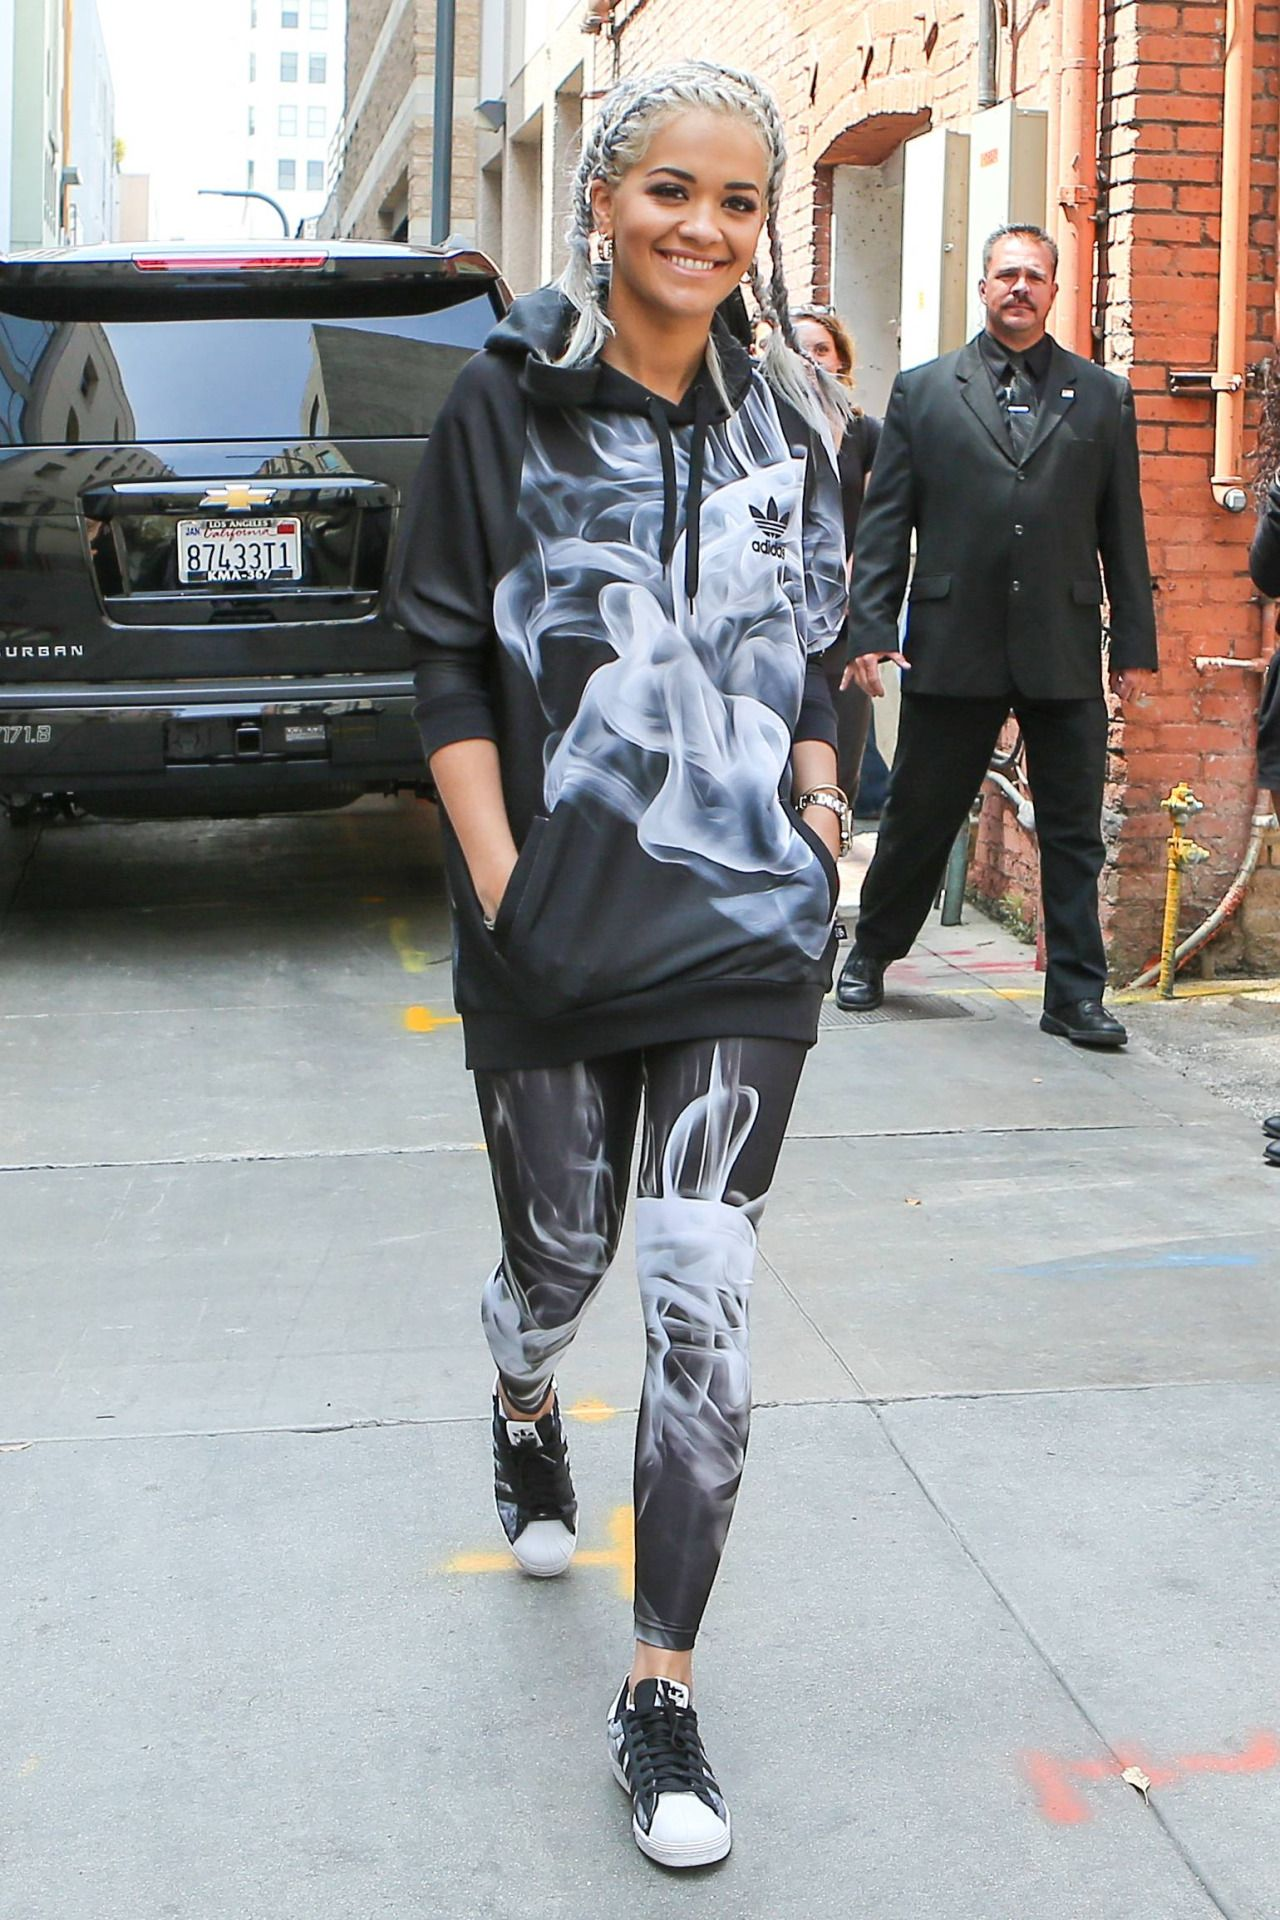 Pin by Lillie Grace on The Look   Rita ora adidas, Adidas outfit